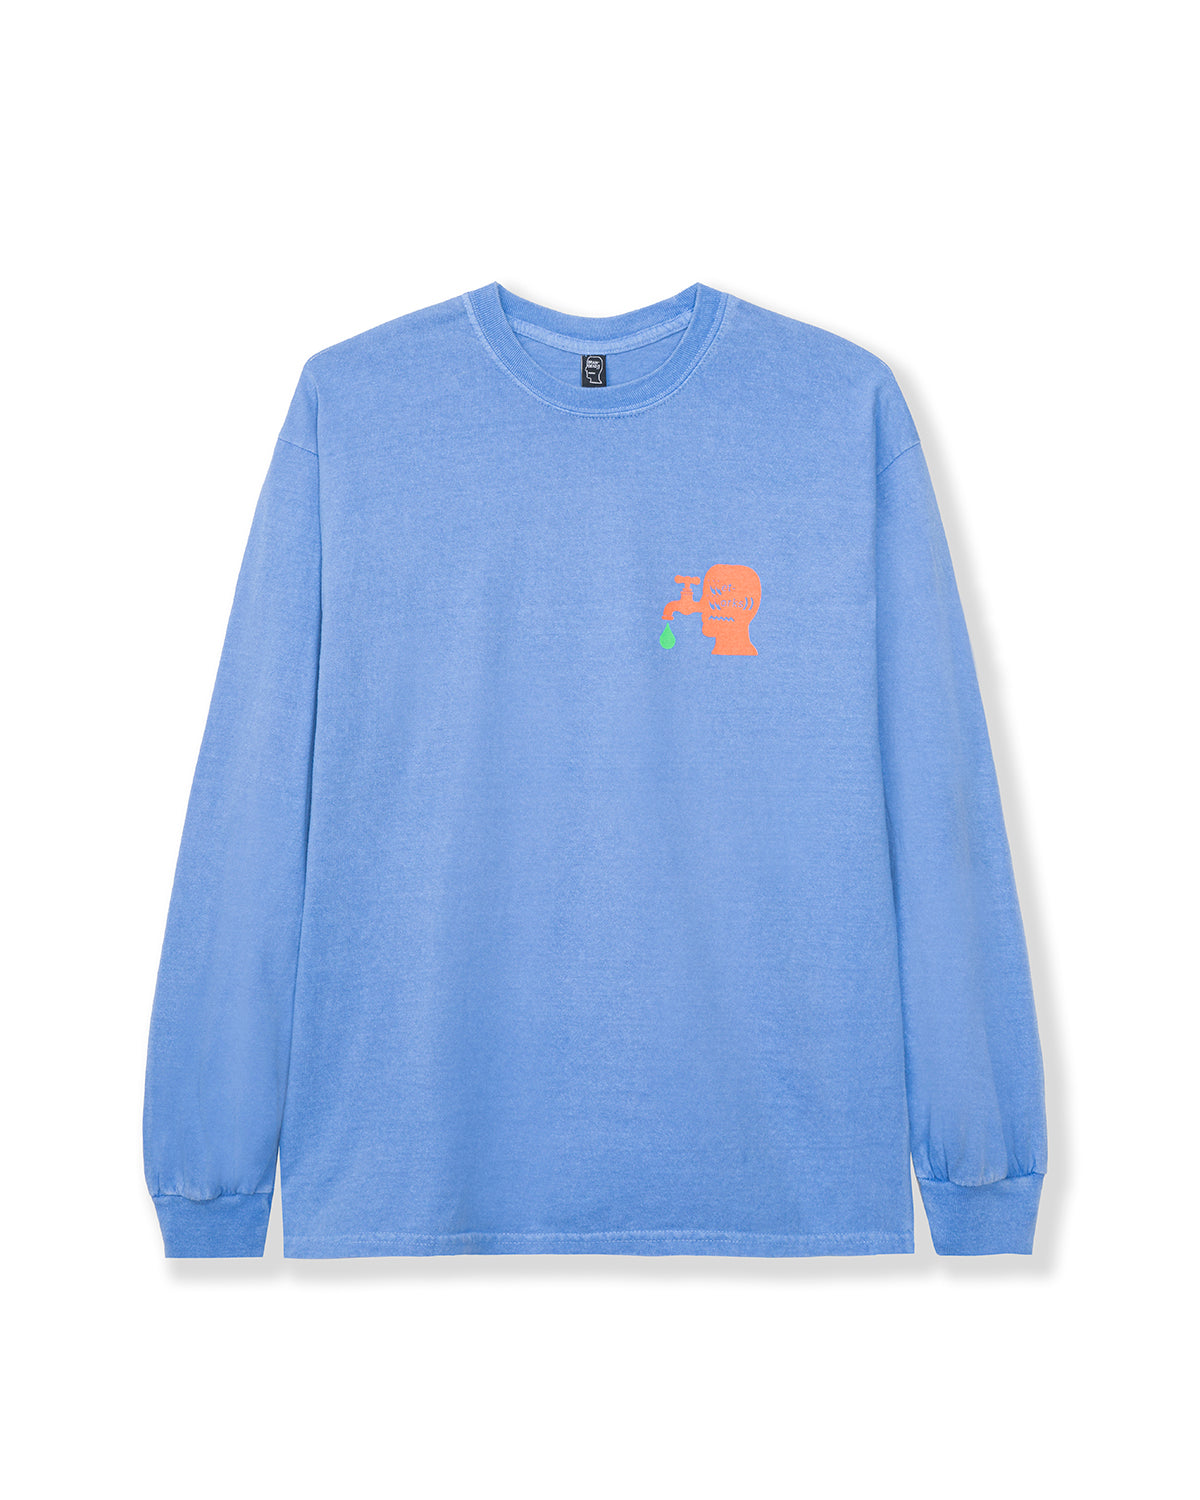 Wet Works Long Sleeve - Sky Blue